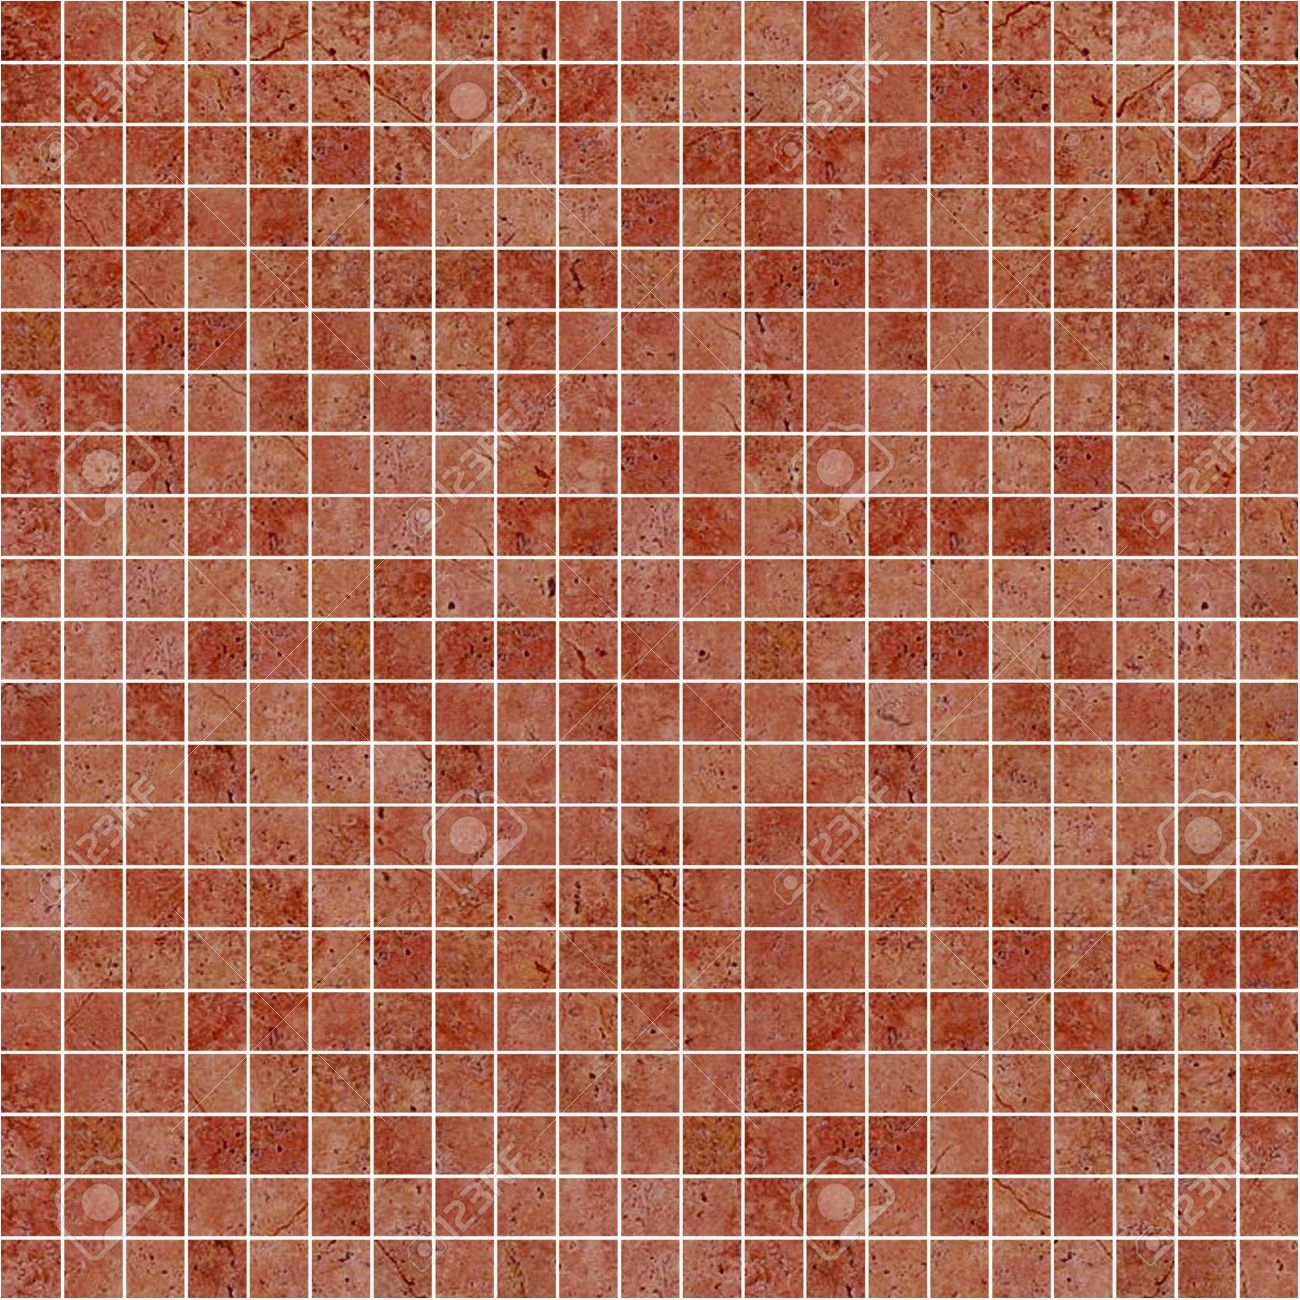 Beige ceramic tile texture stock photo picture and royalty free beige ceramic tile texture stock photo 11332452 dailygadgetfo Image collections